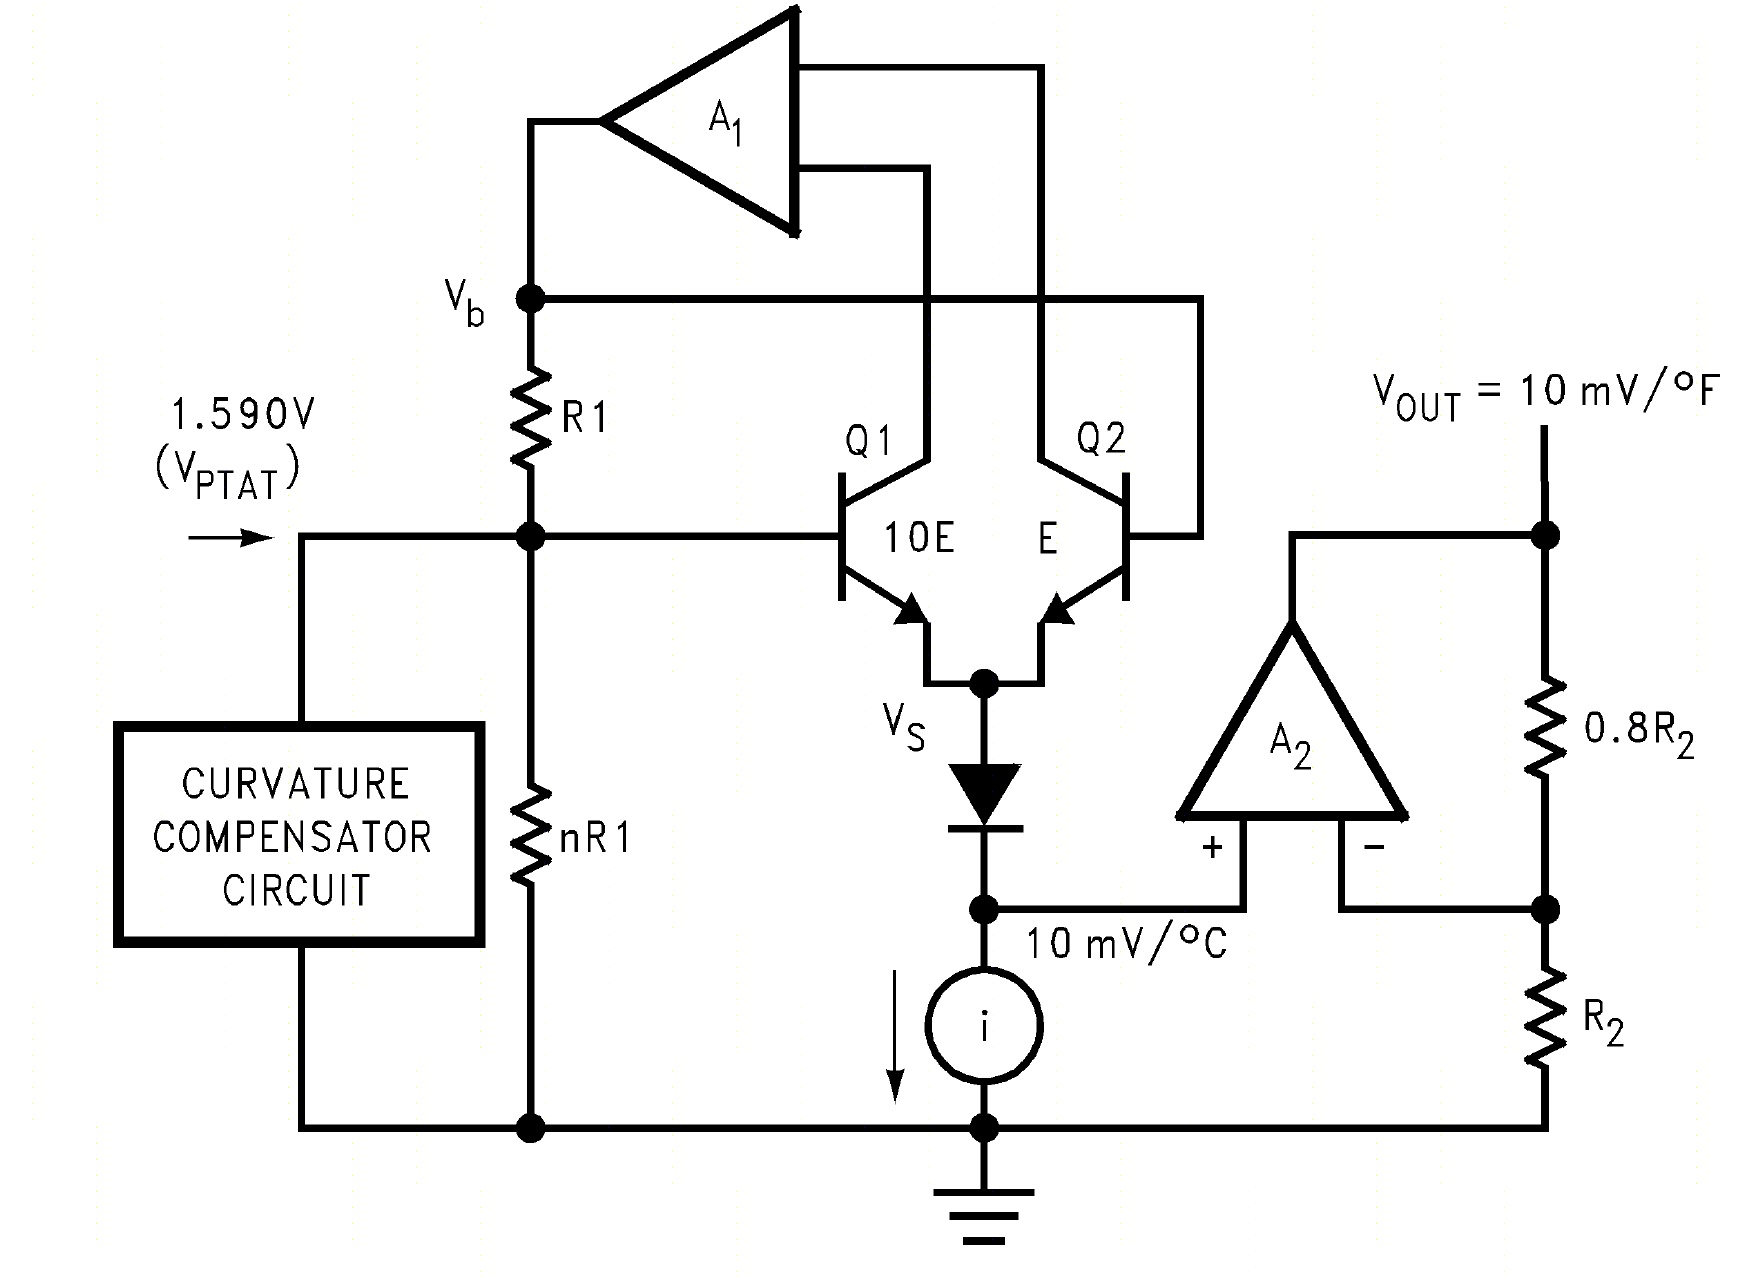 lm34_circuit_diagram chapter 10 computers and electronics homemade electronic How to Draw a Wiring Diagram ECE at fashall.co